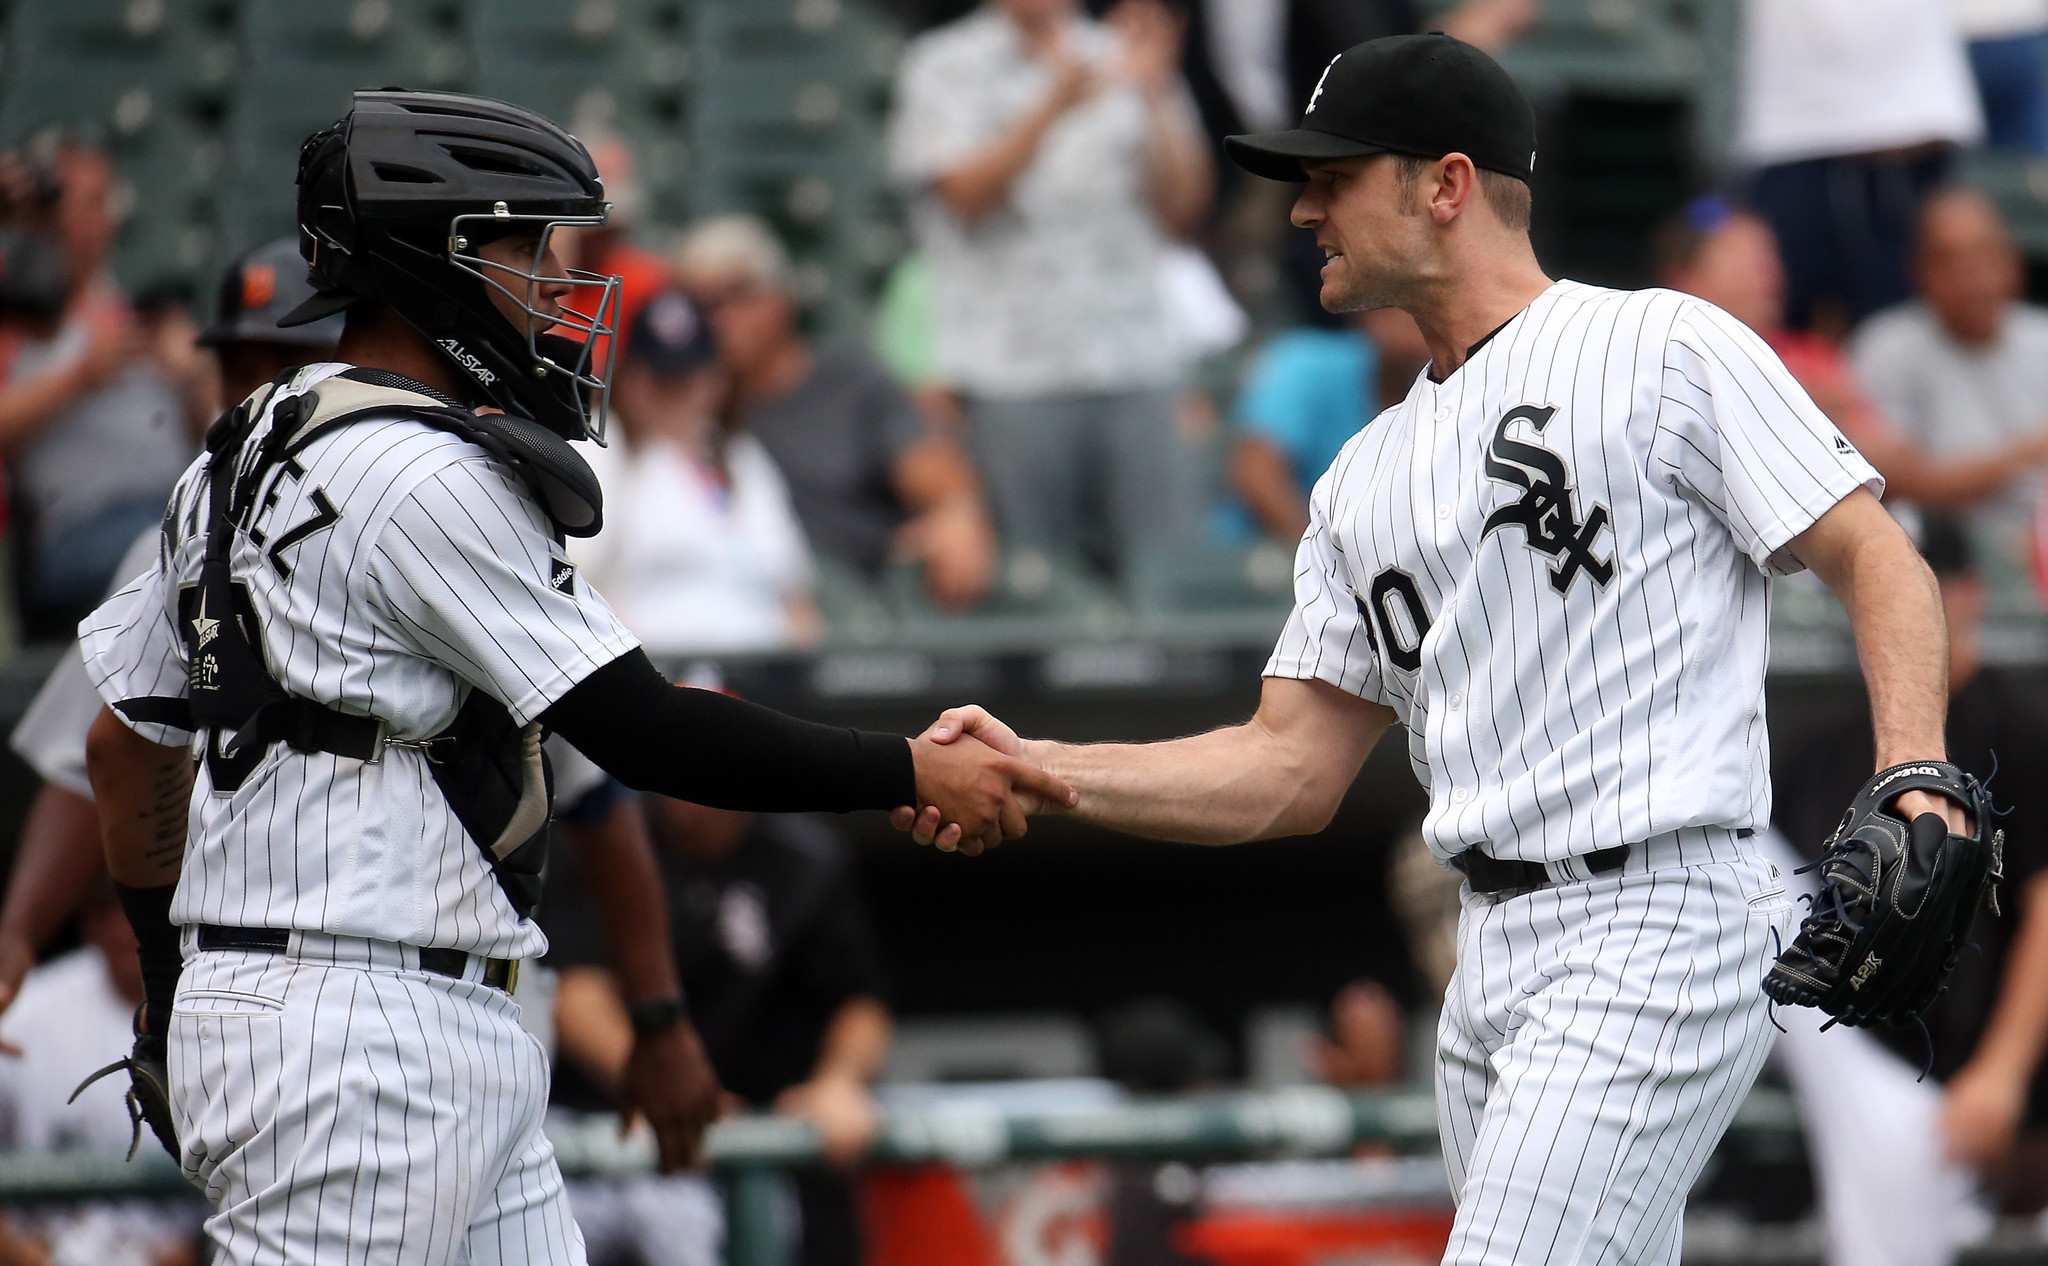 Ct-white-sox-top-tigers-tigers-spt-0908-20160907